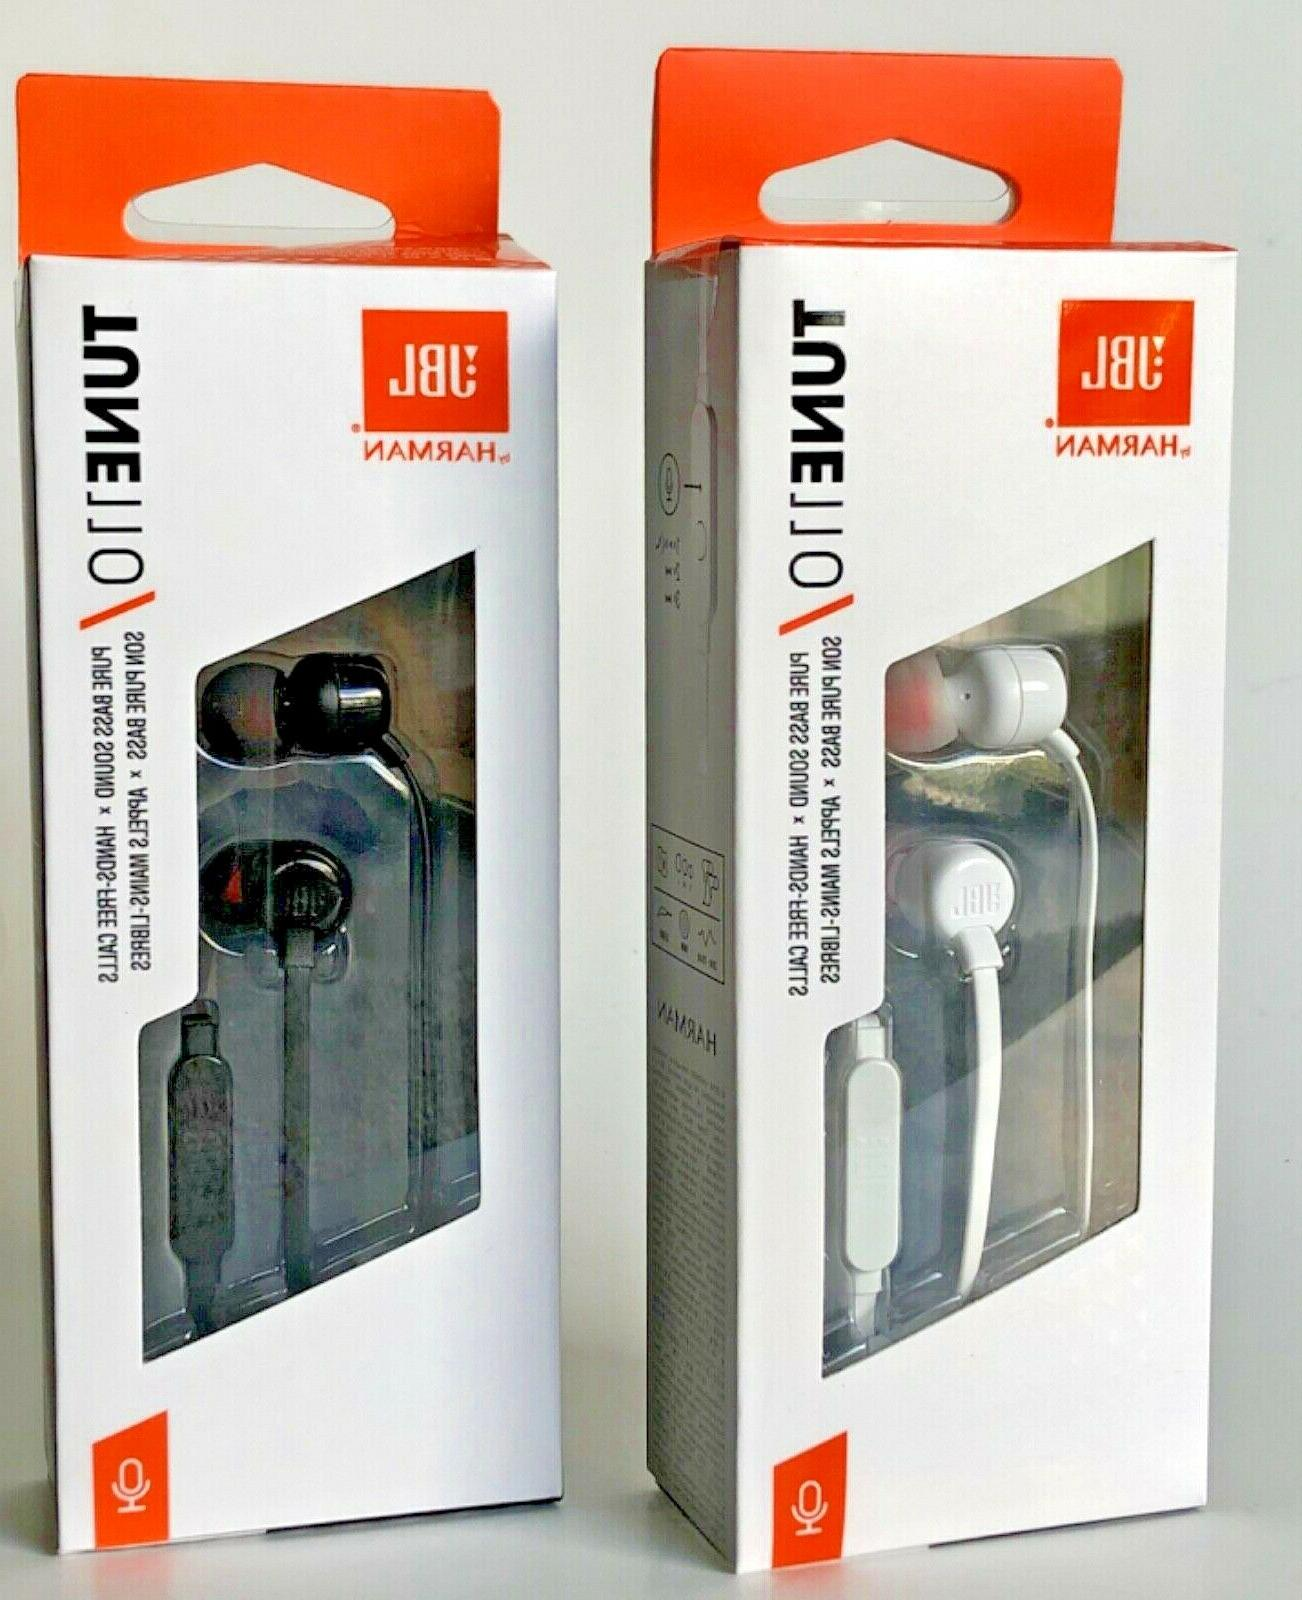 NEW JBL Wired Headphones Remote Control+ Black/White